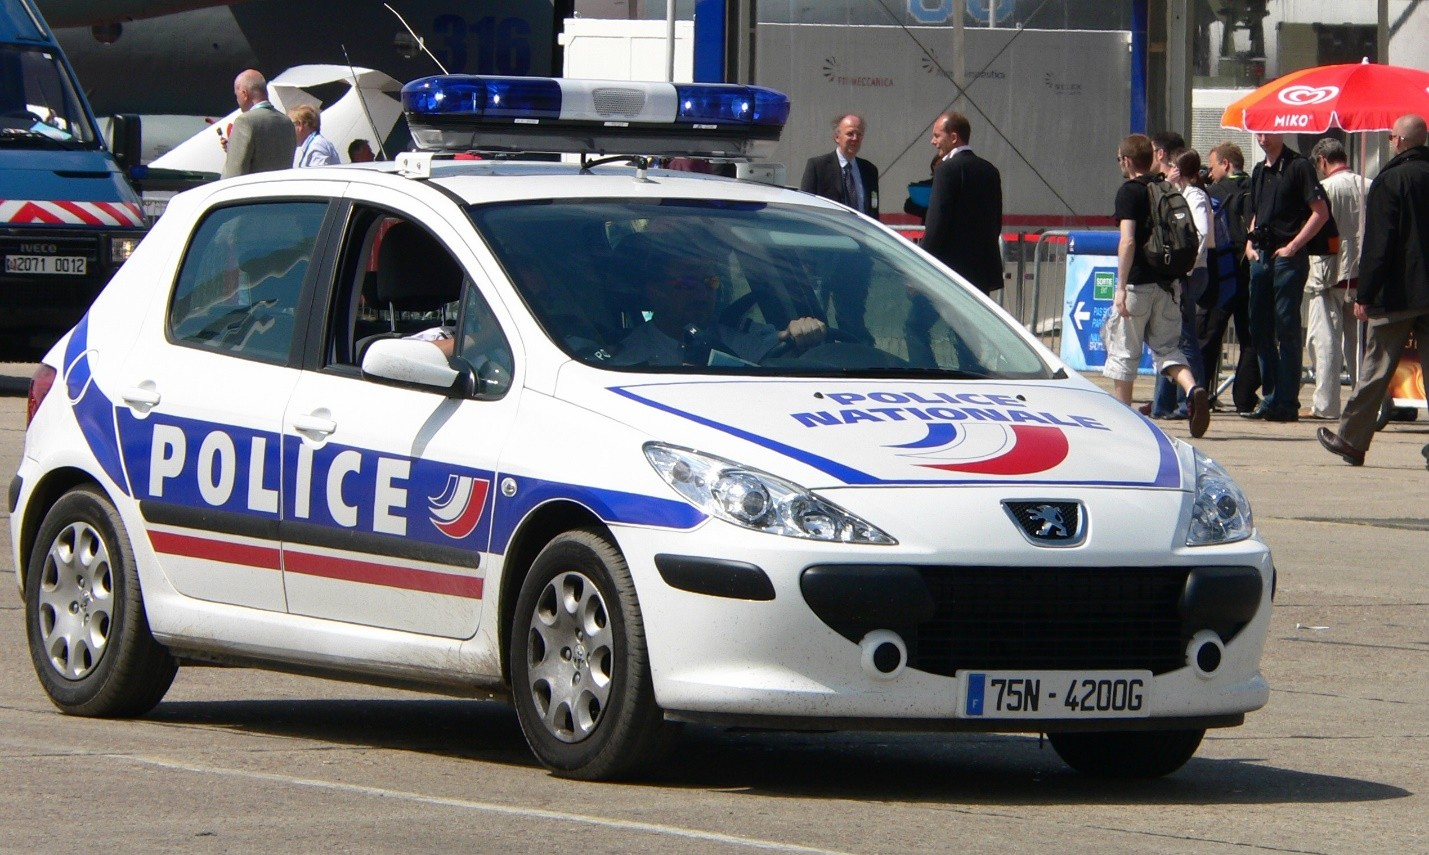 Photo Credit: https://upload.wikimedia.org/wikipedia/commons/e/e2/French_Police_p1230006.jpg